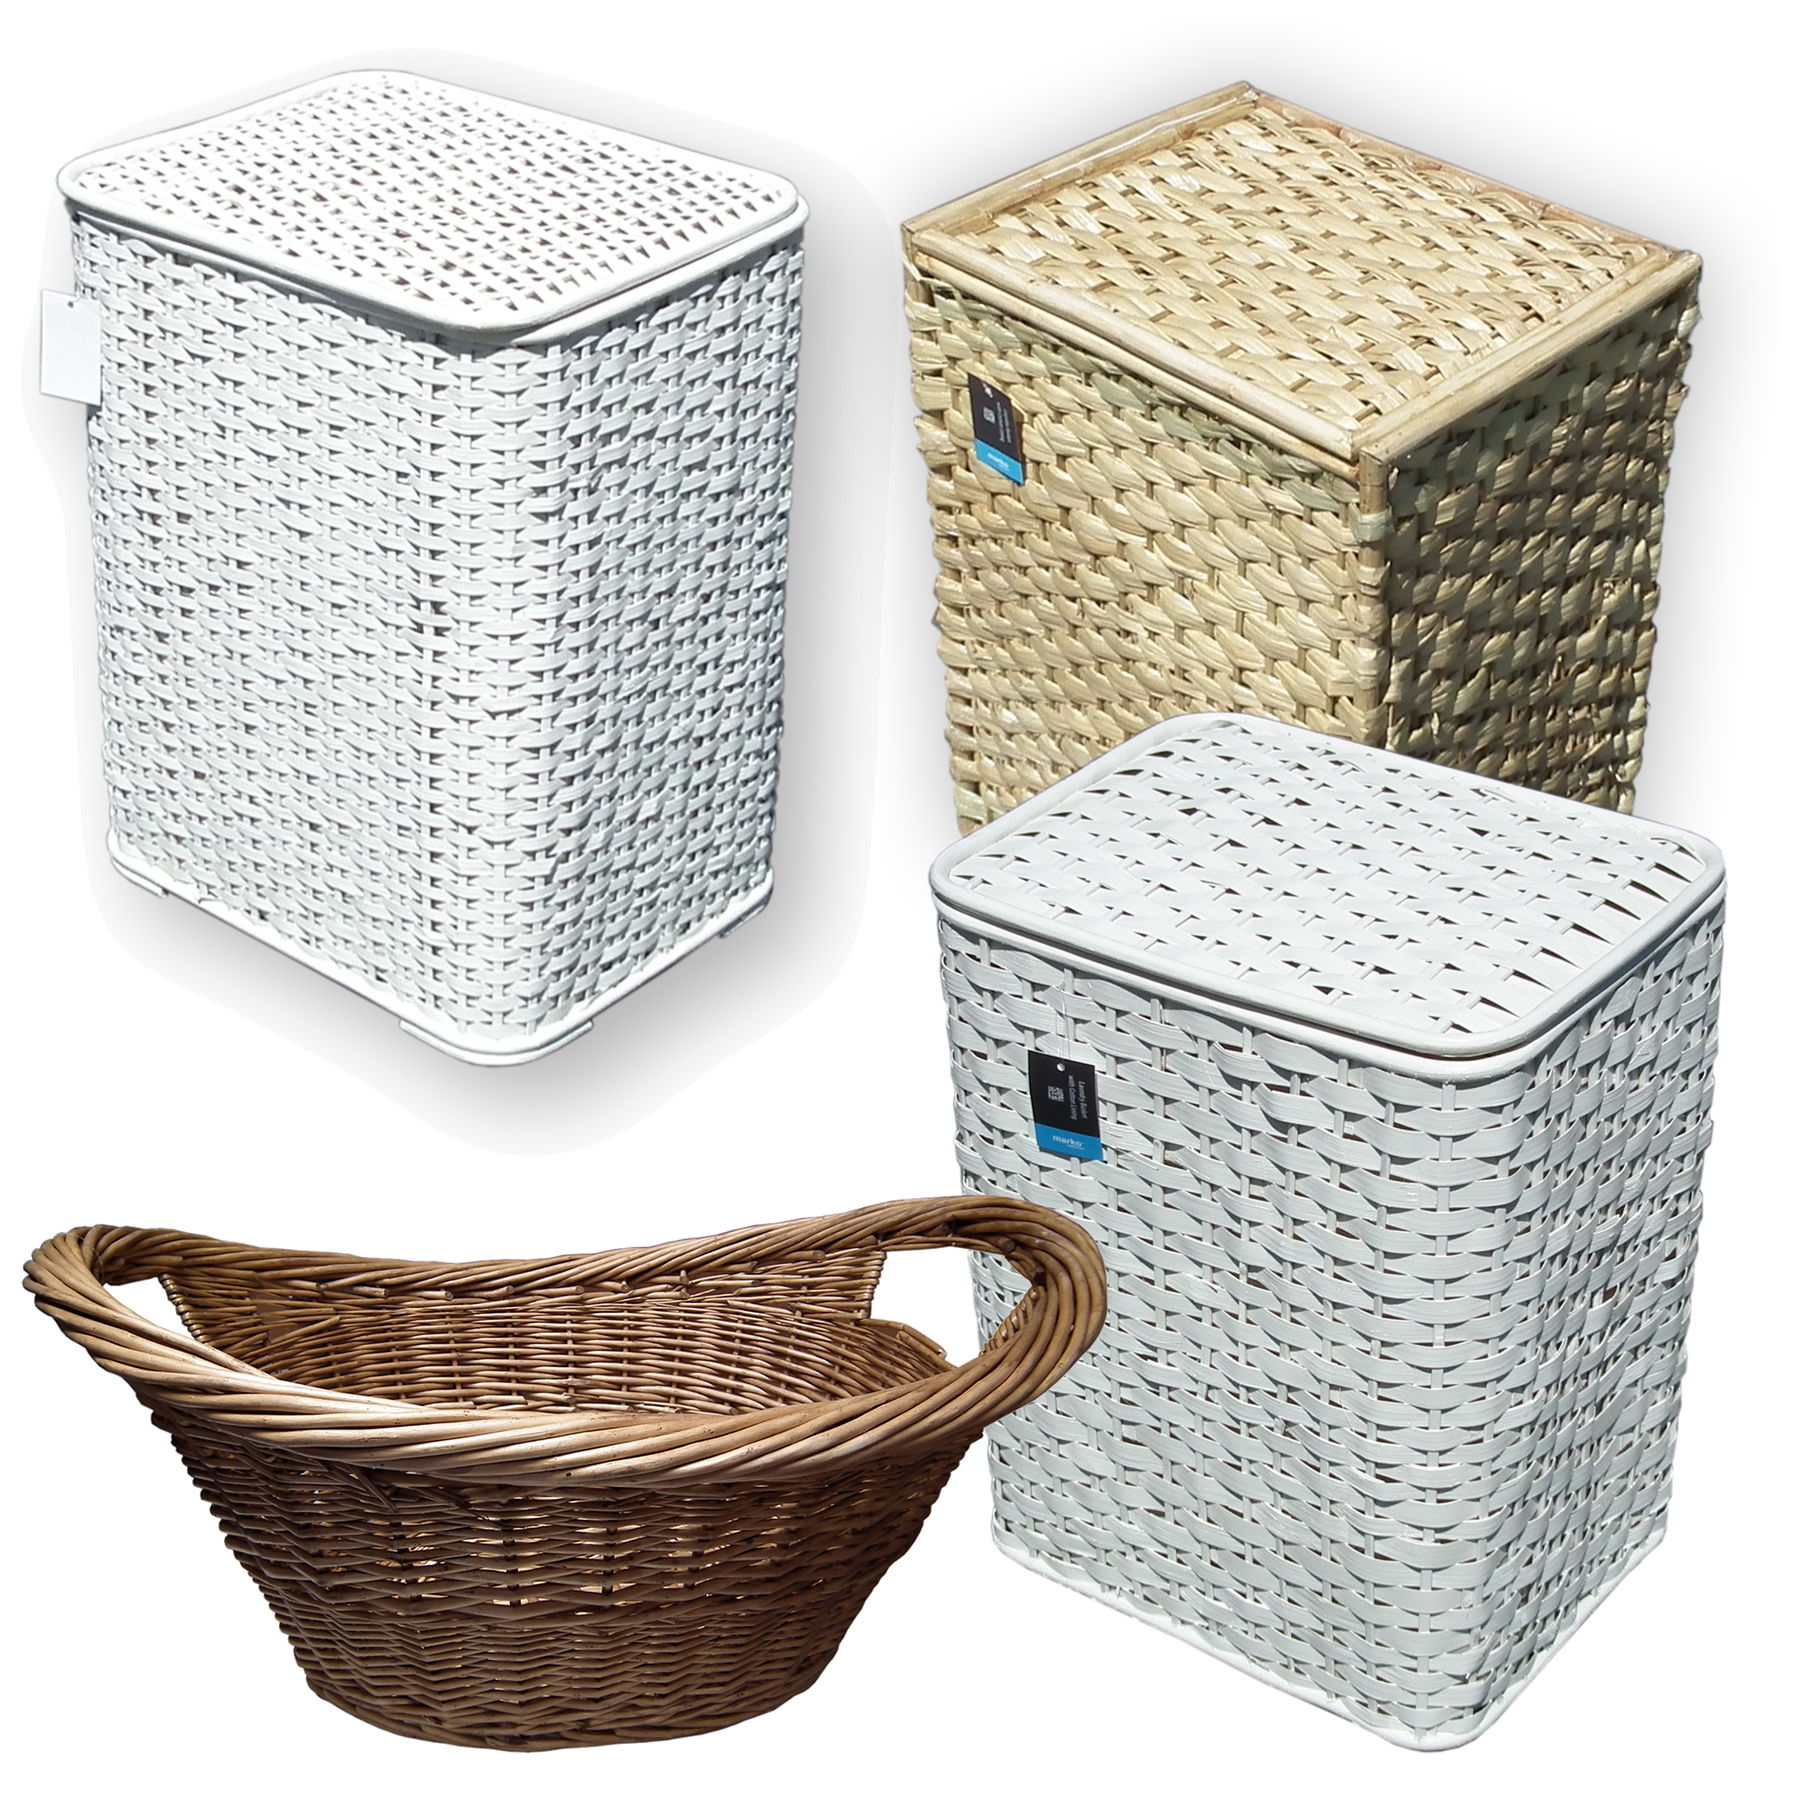 White Laundry Hamper With Lid Bamboo Seagrass Wicker Laundry Basket Lid White Woven